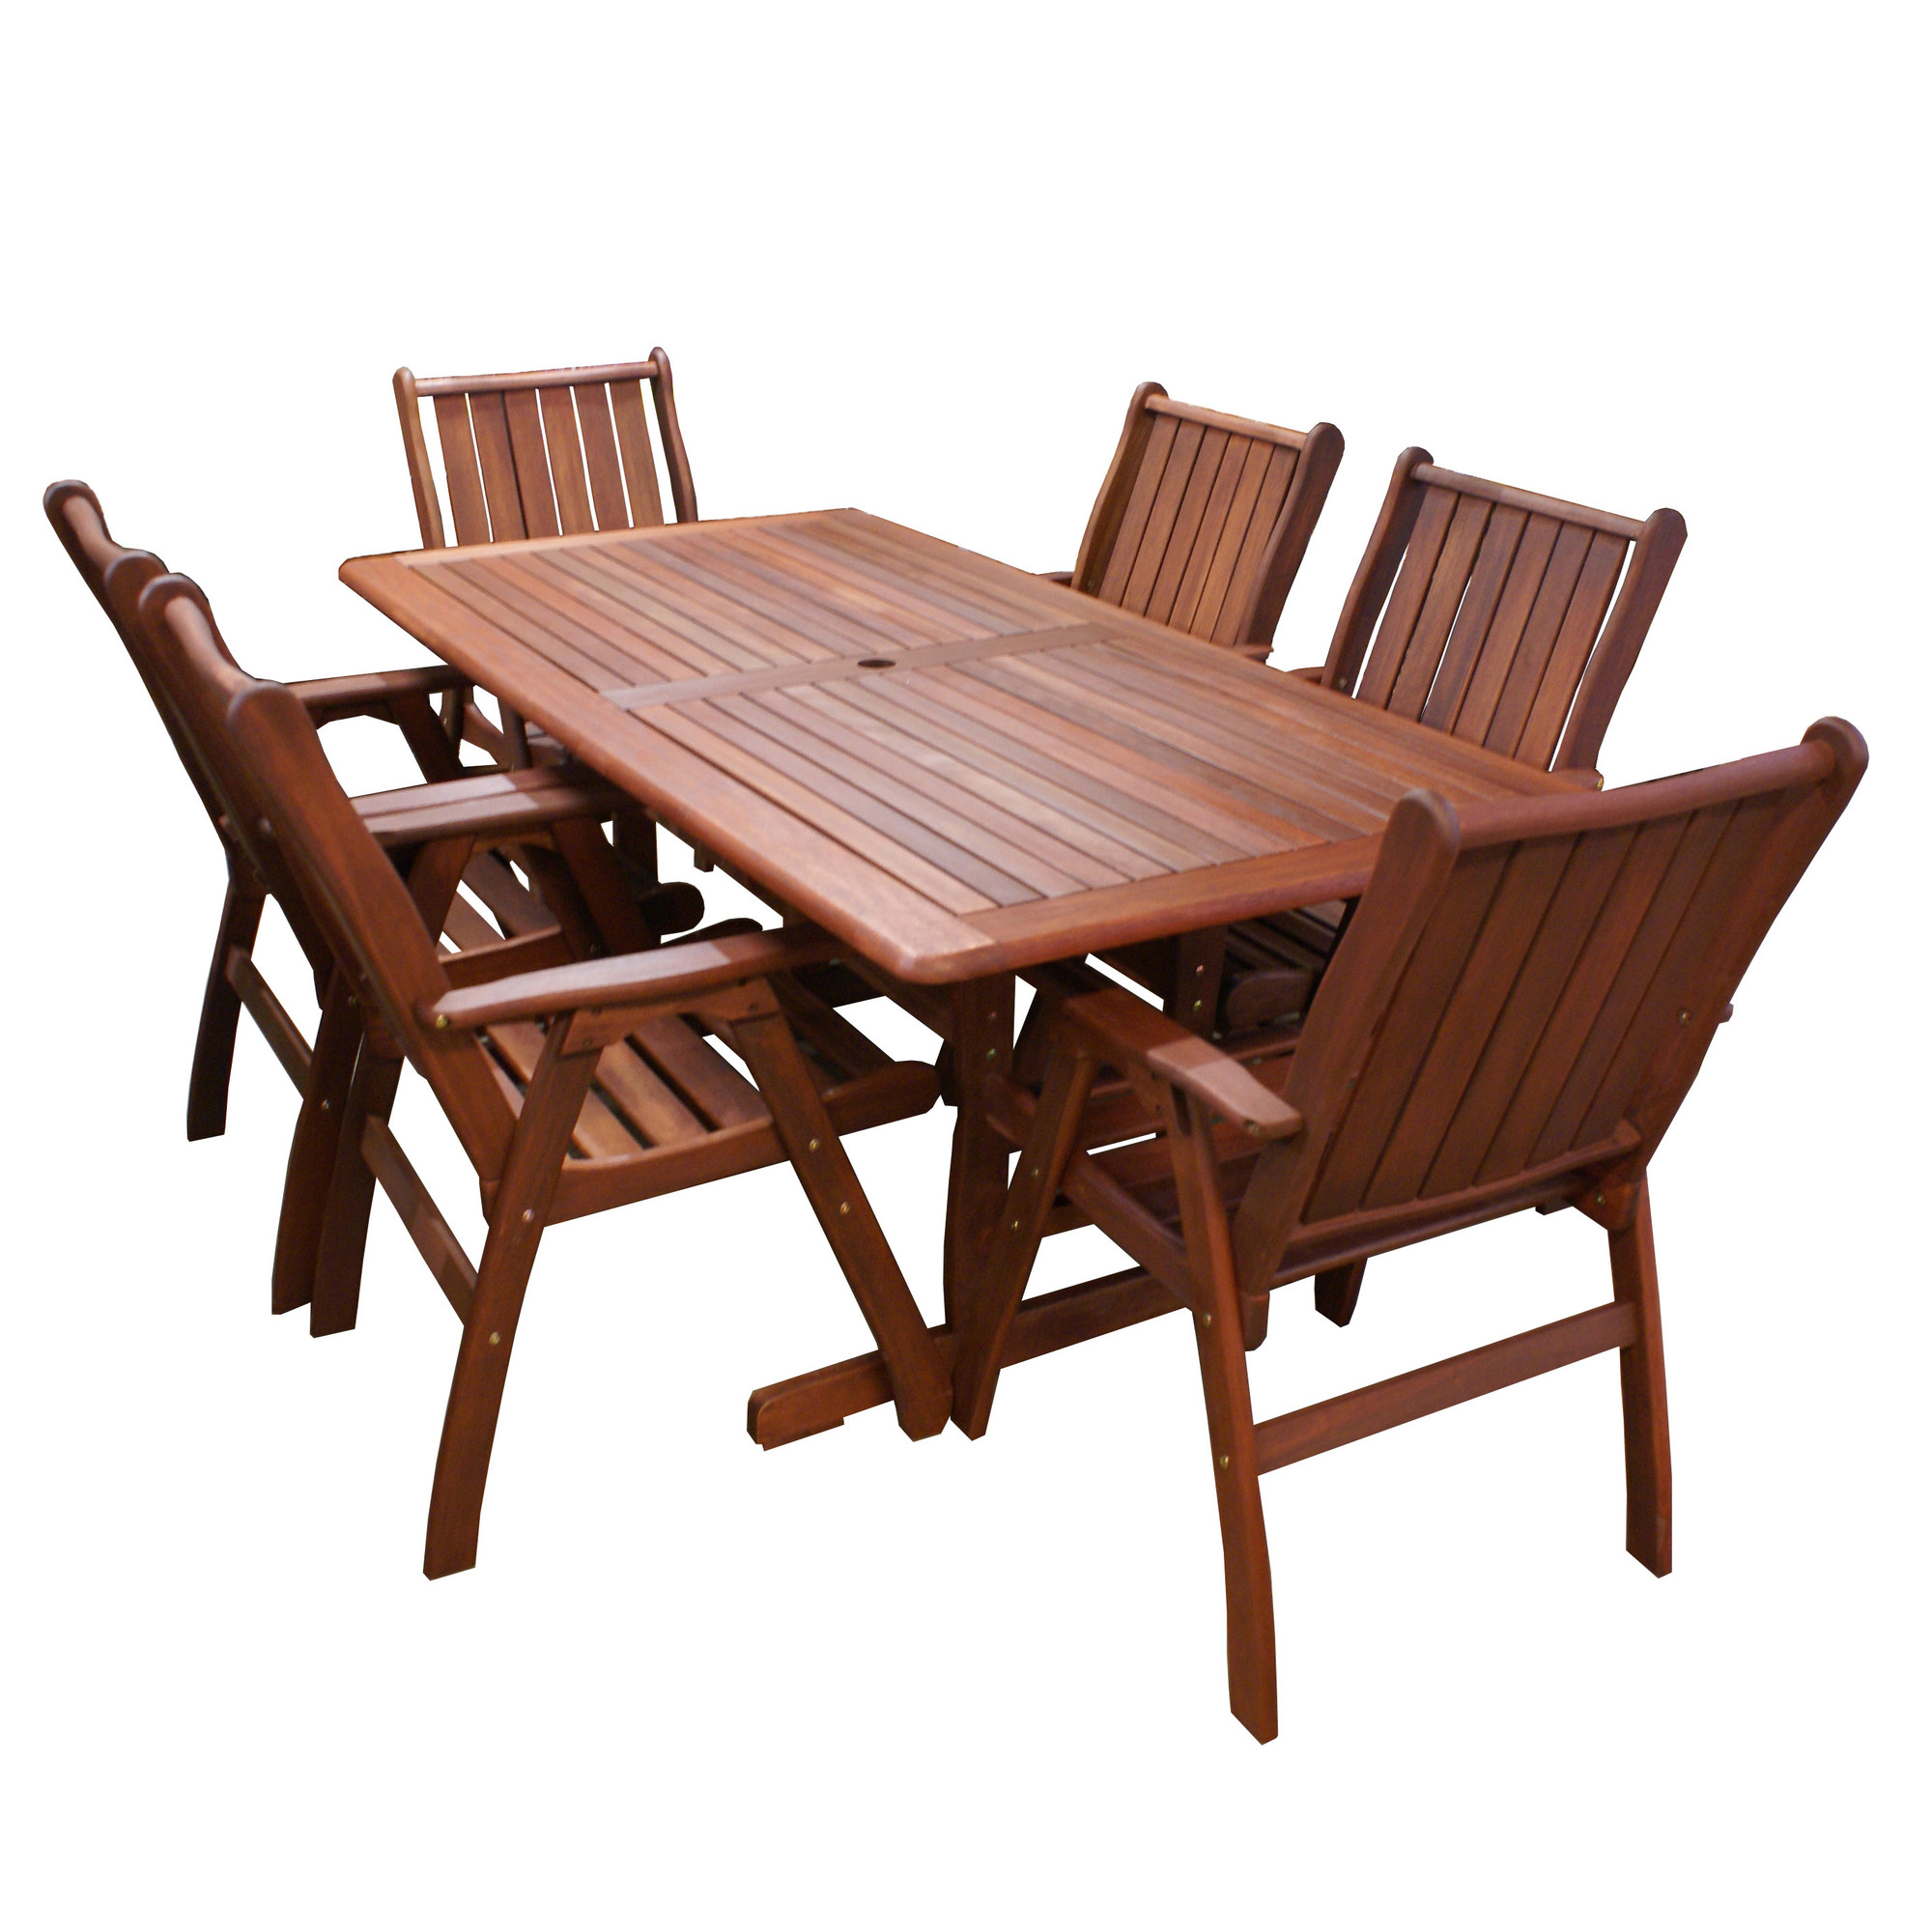 7 Piece Santa Maria Outdoor Dining Table Chair Set Temple Webster